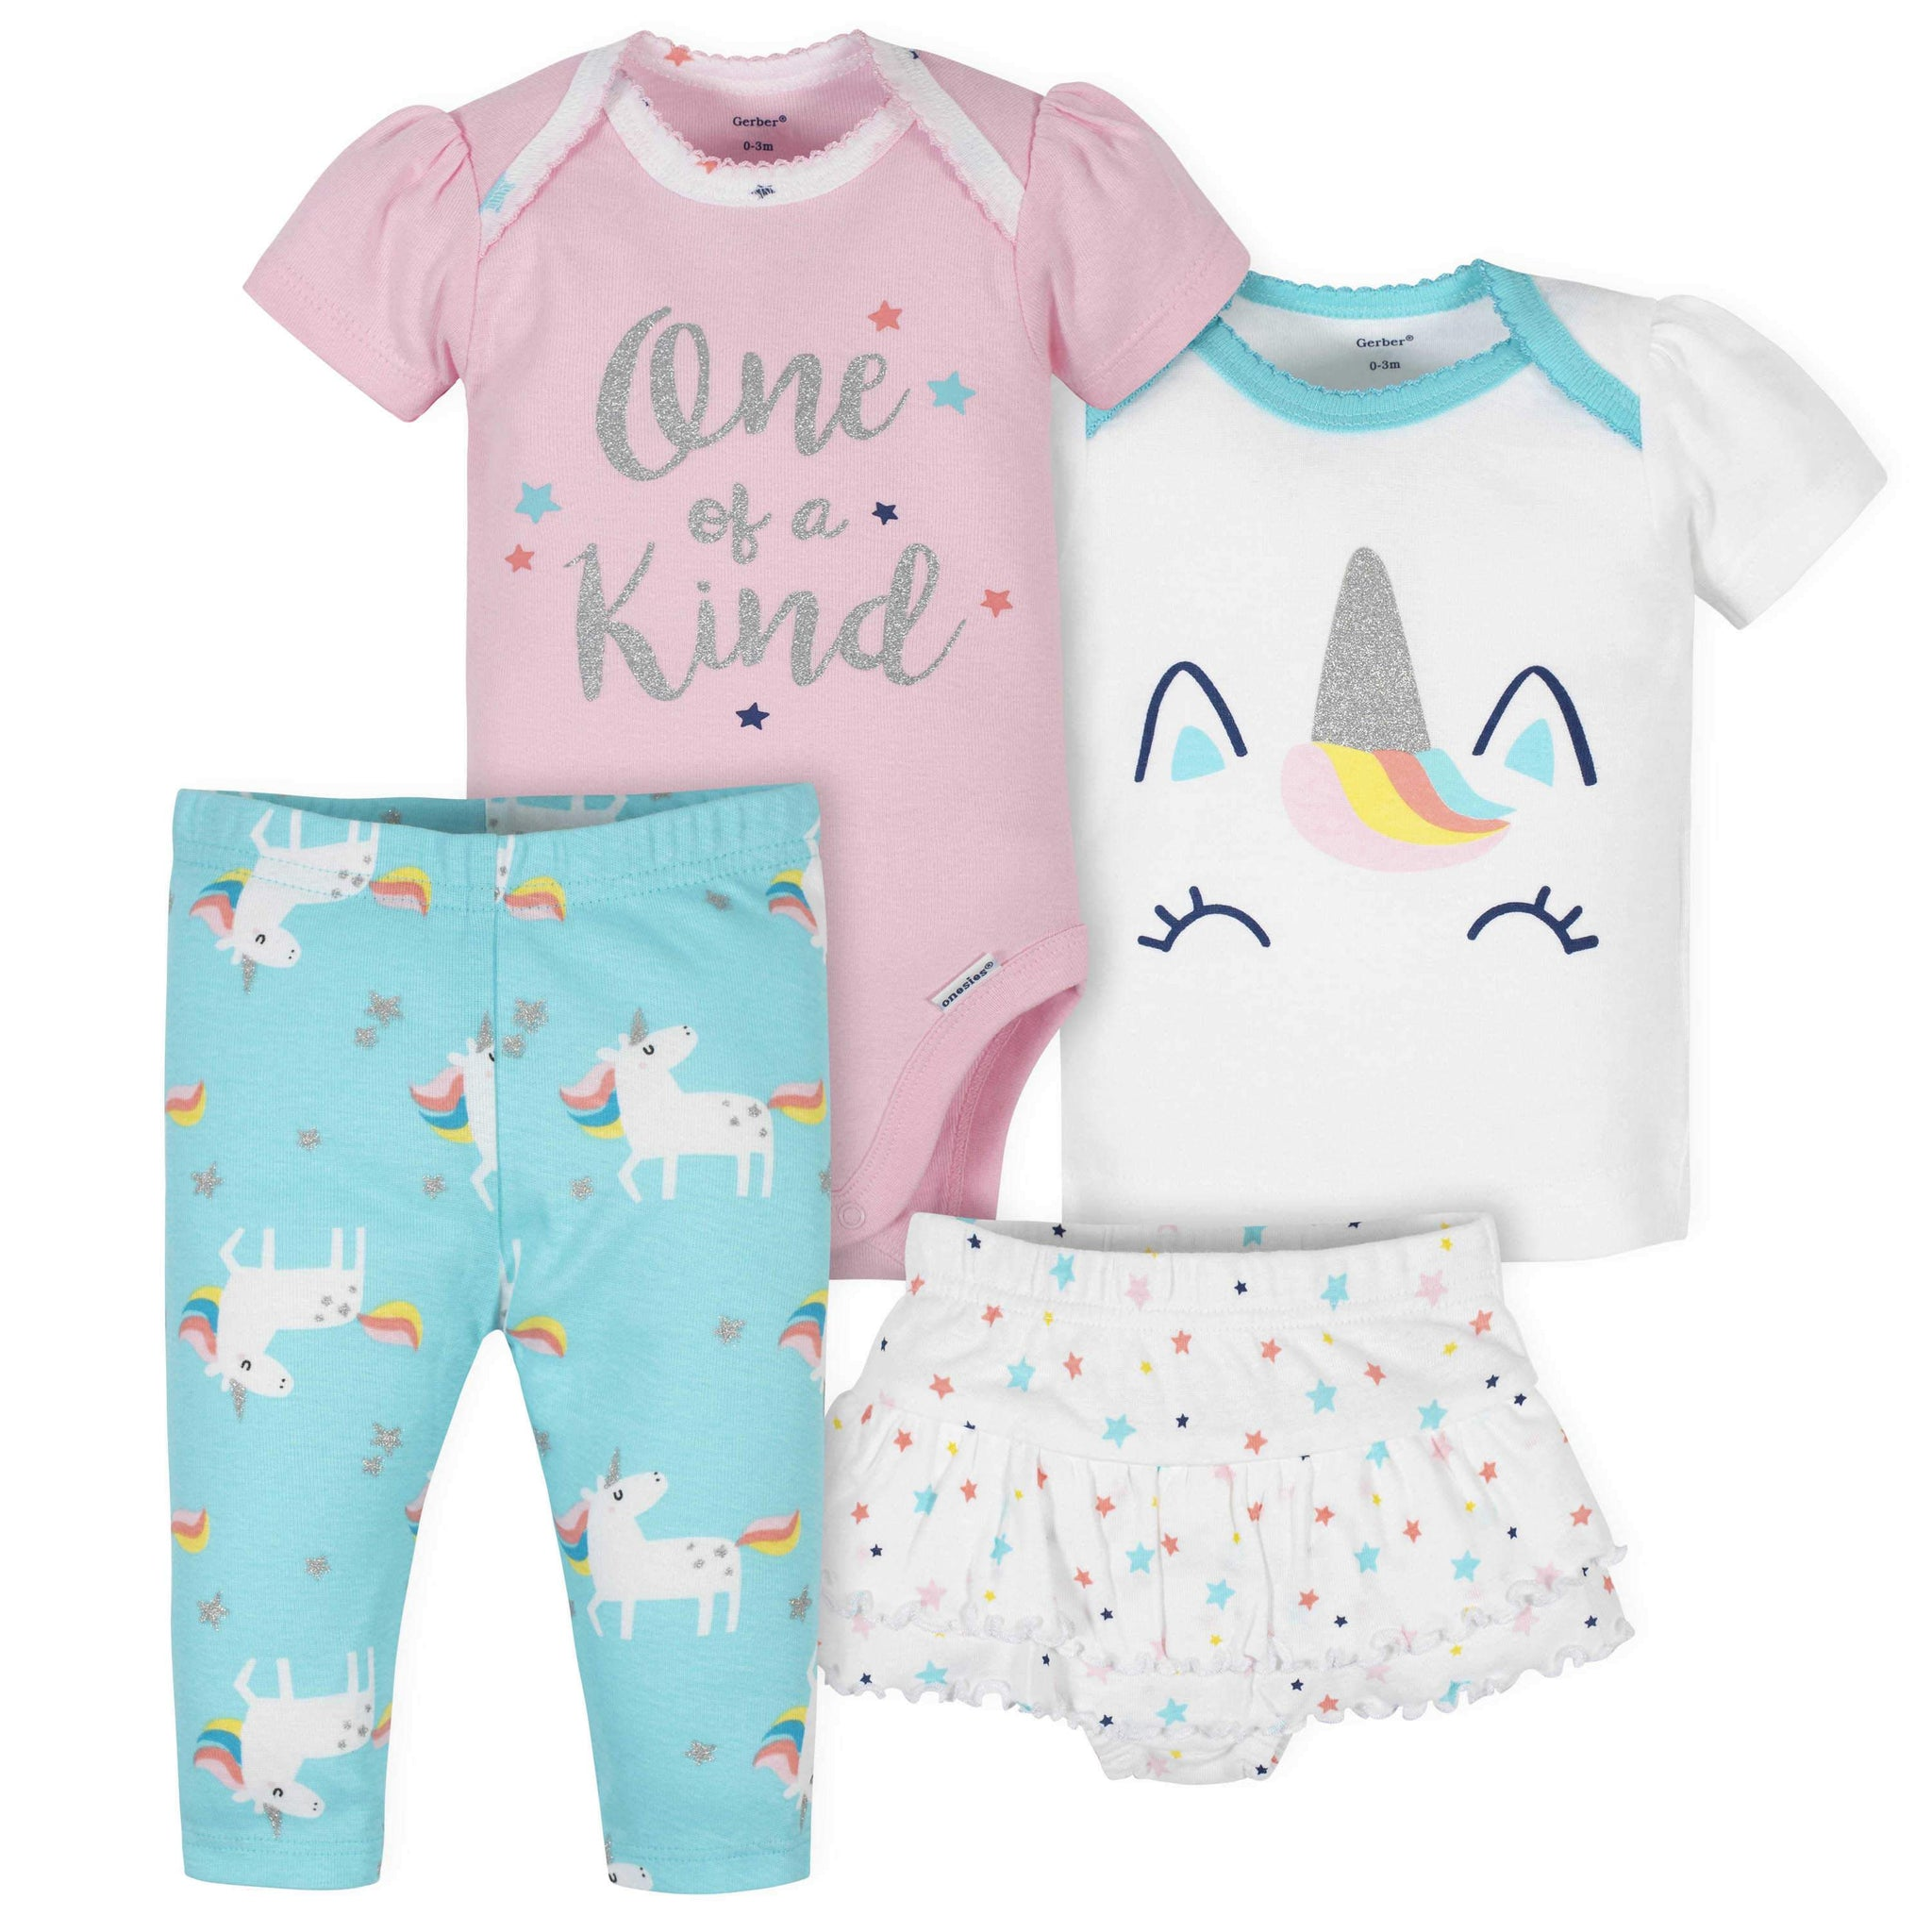 4-Piece Baby Girls Unicorn Onesies Bodysuit, Skirted Panty, Shirt, and Slim Pant Set